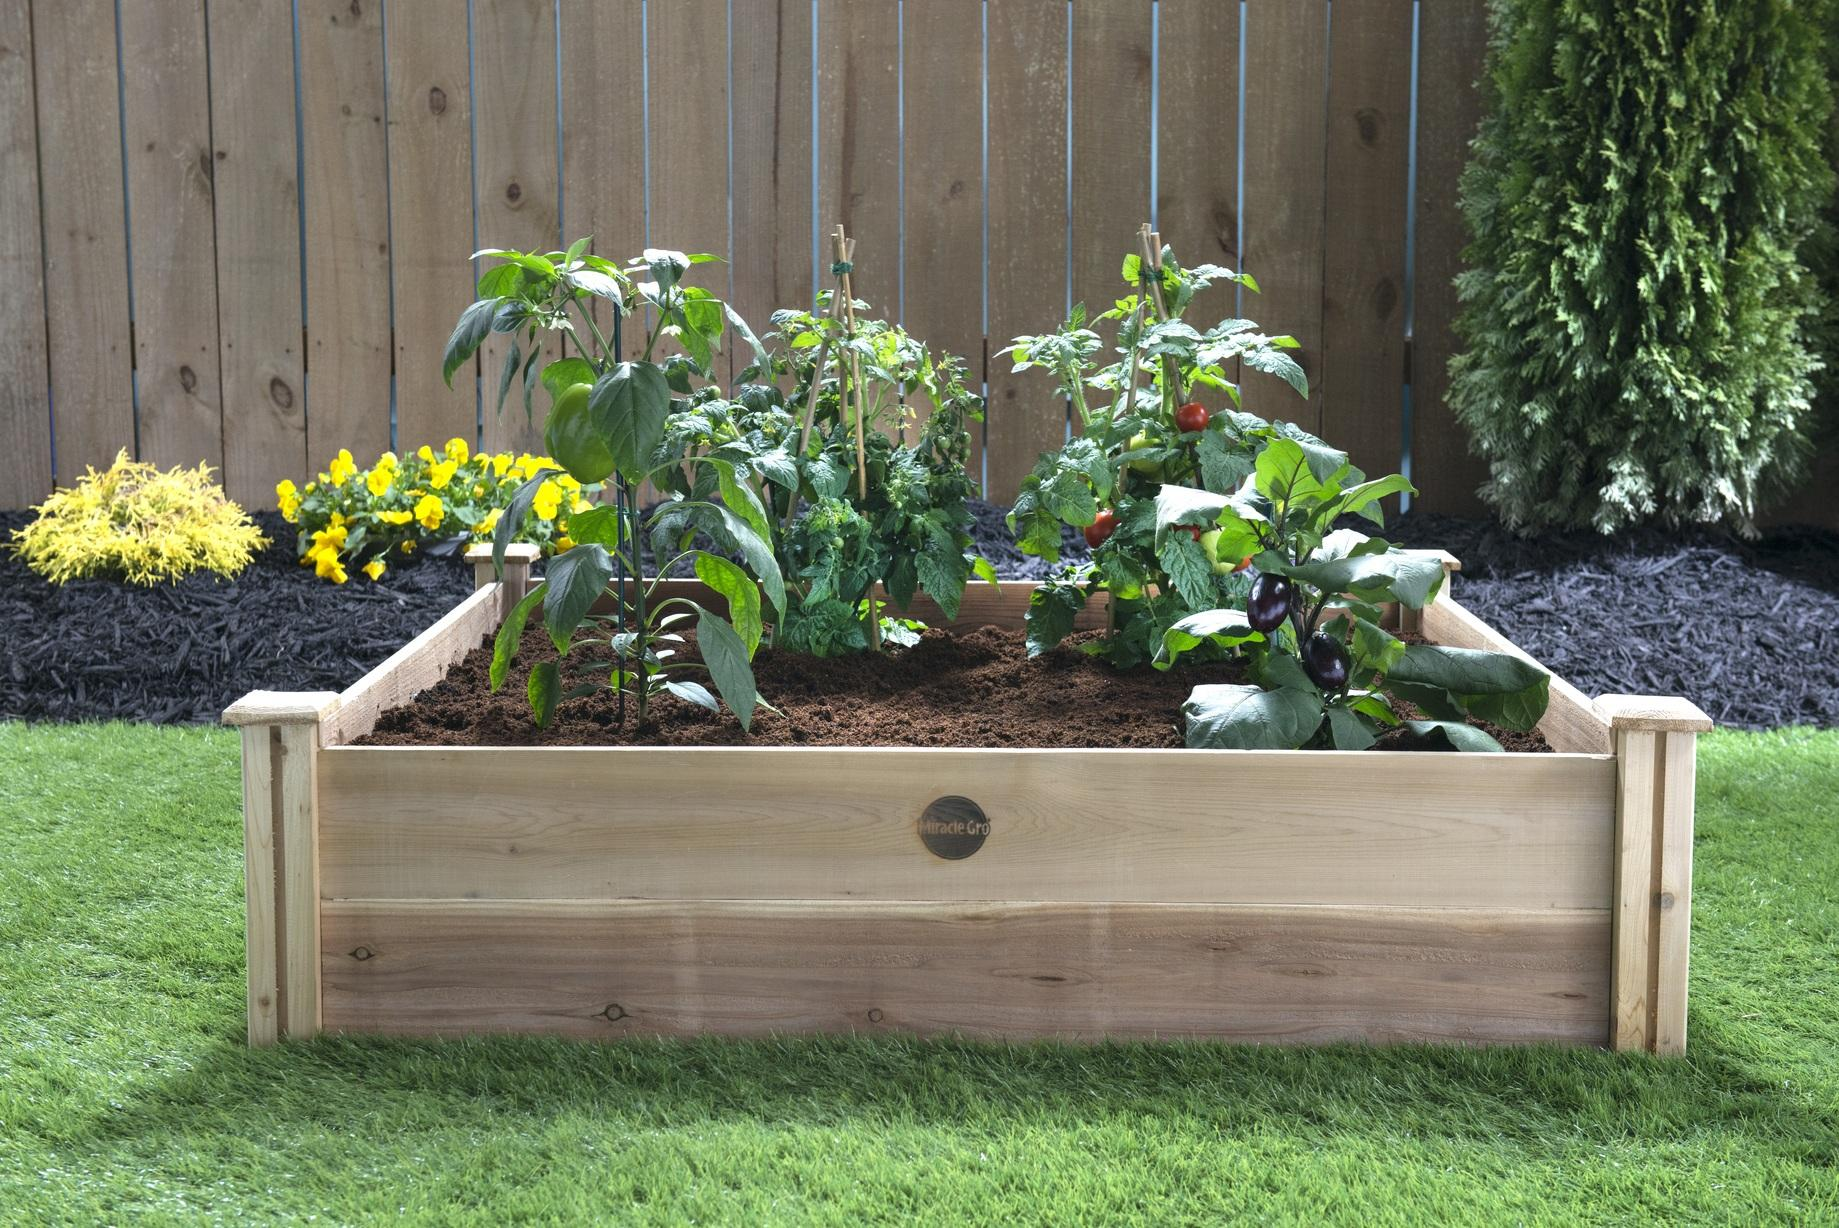 A large wooden frame houses a raised bed garden filled with nutrient-rich soil and various vegetable plants.